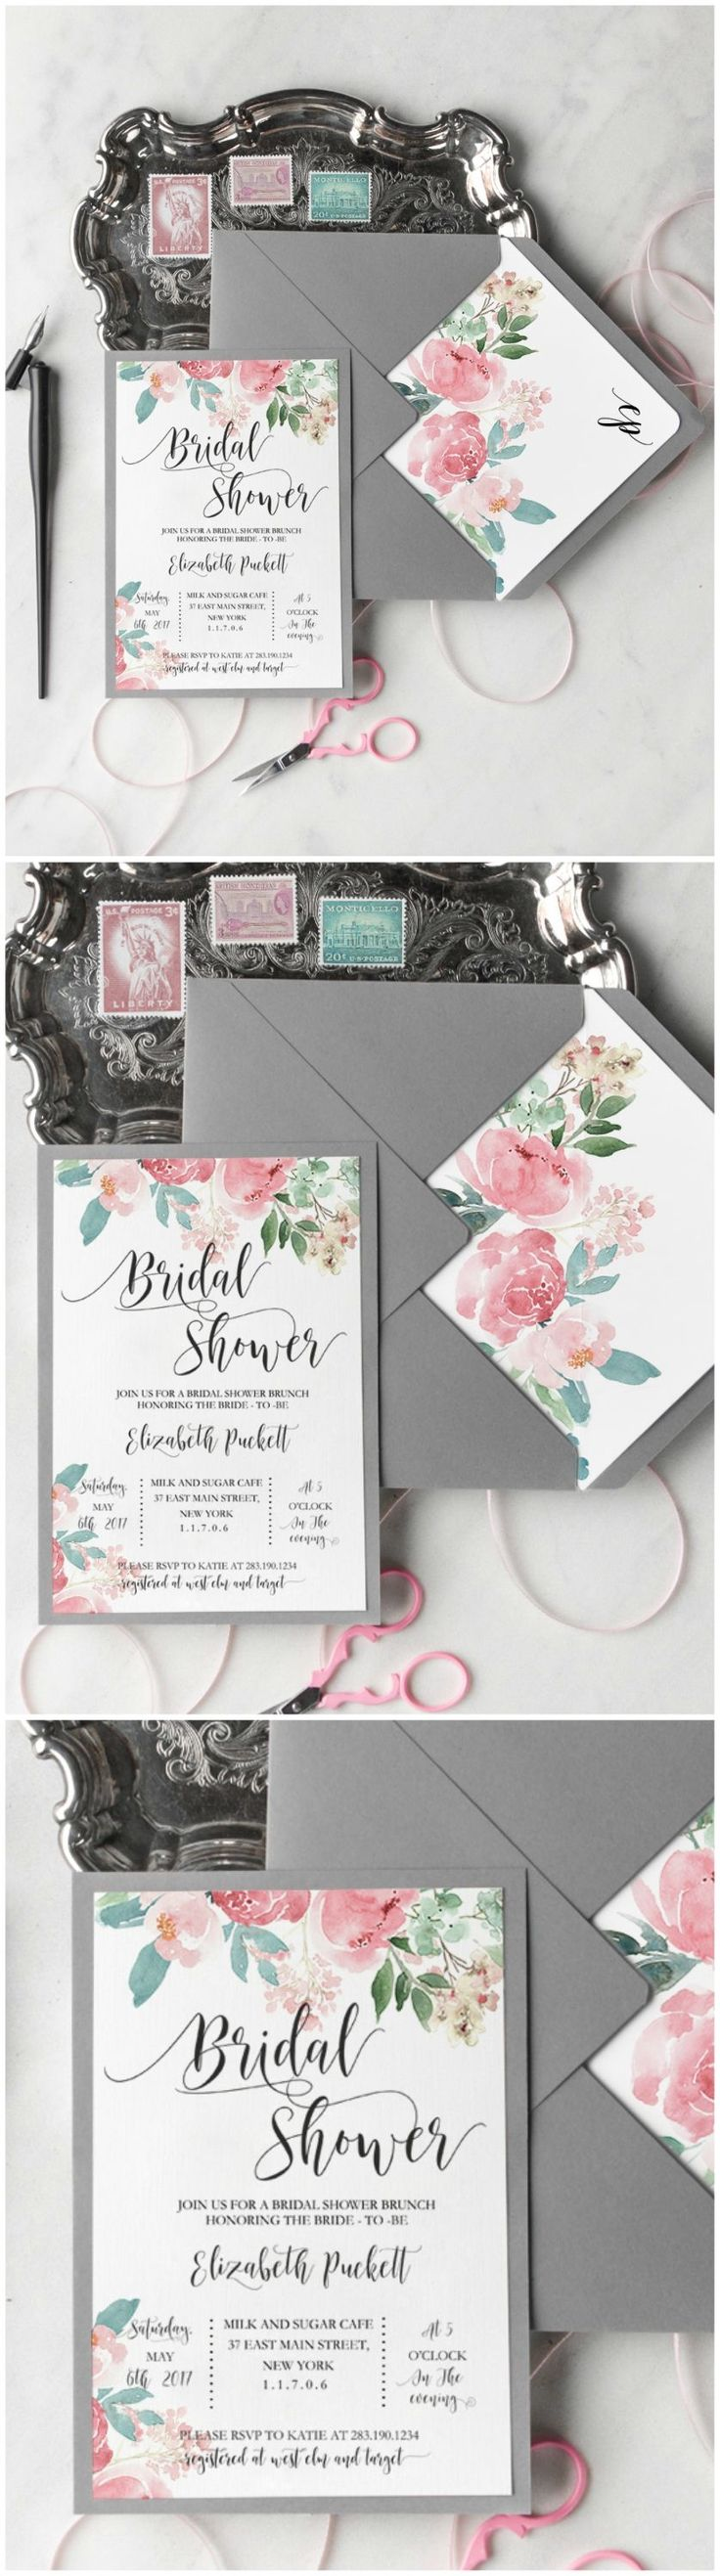 creative bridal shower invitation ideas%0A Invite your best friends for a bridal shower by giving them lovely invites